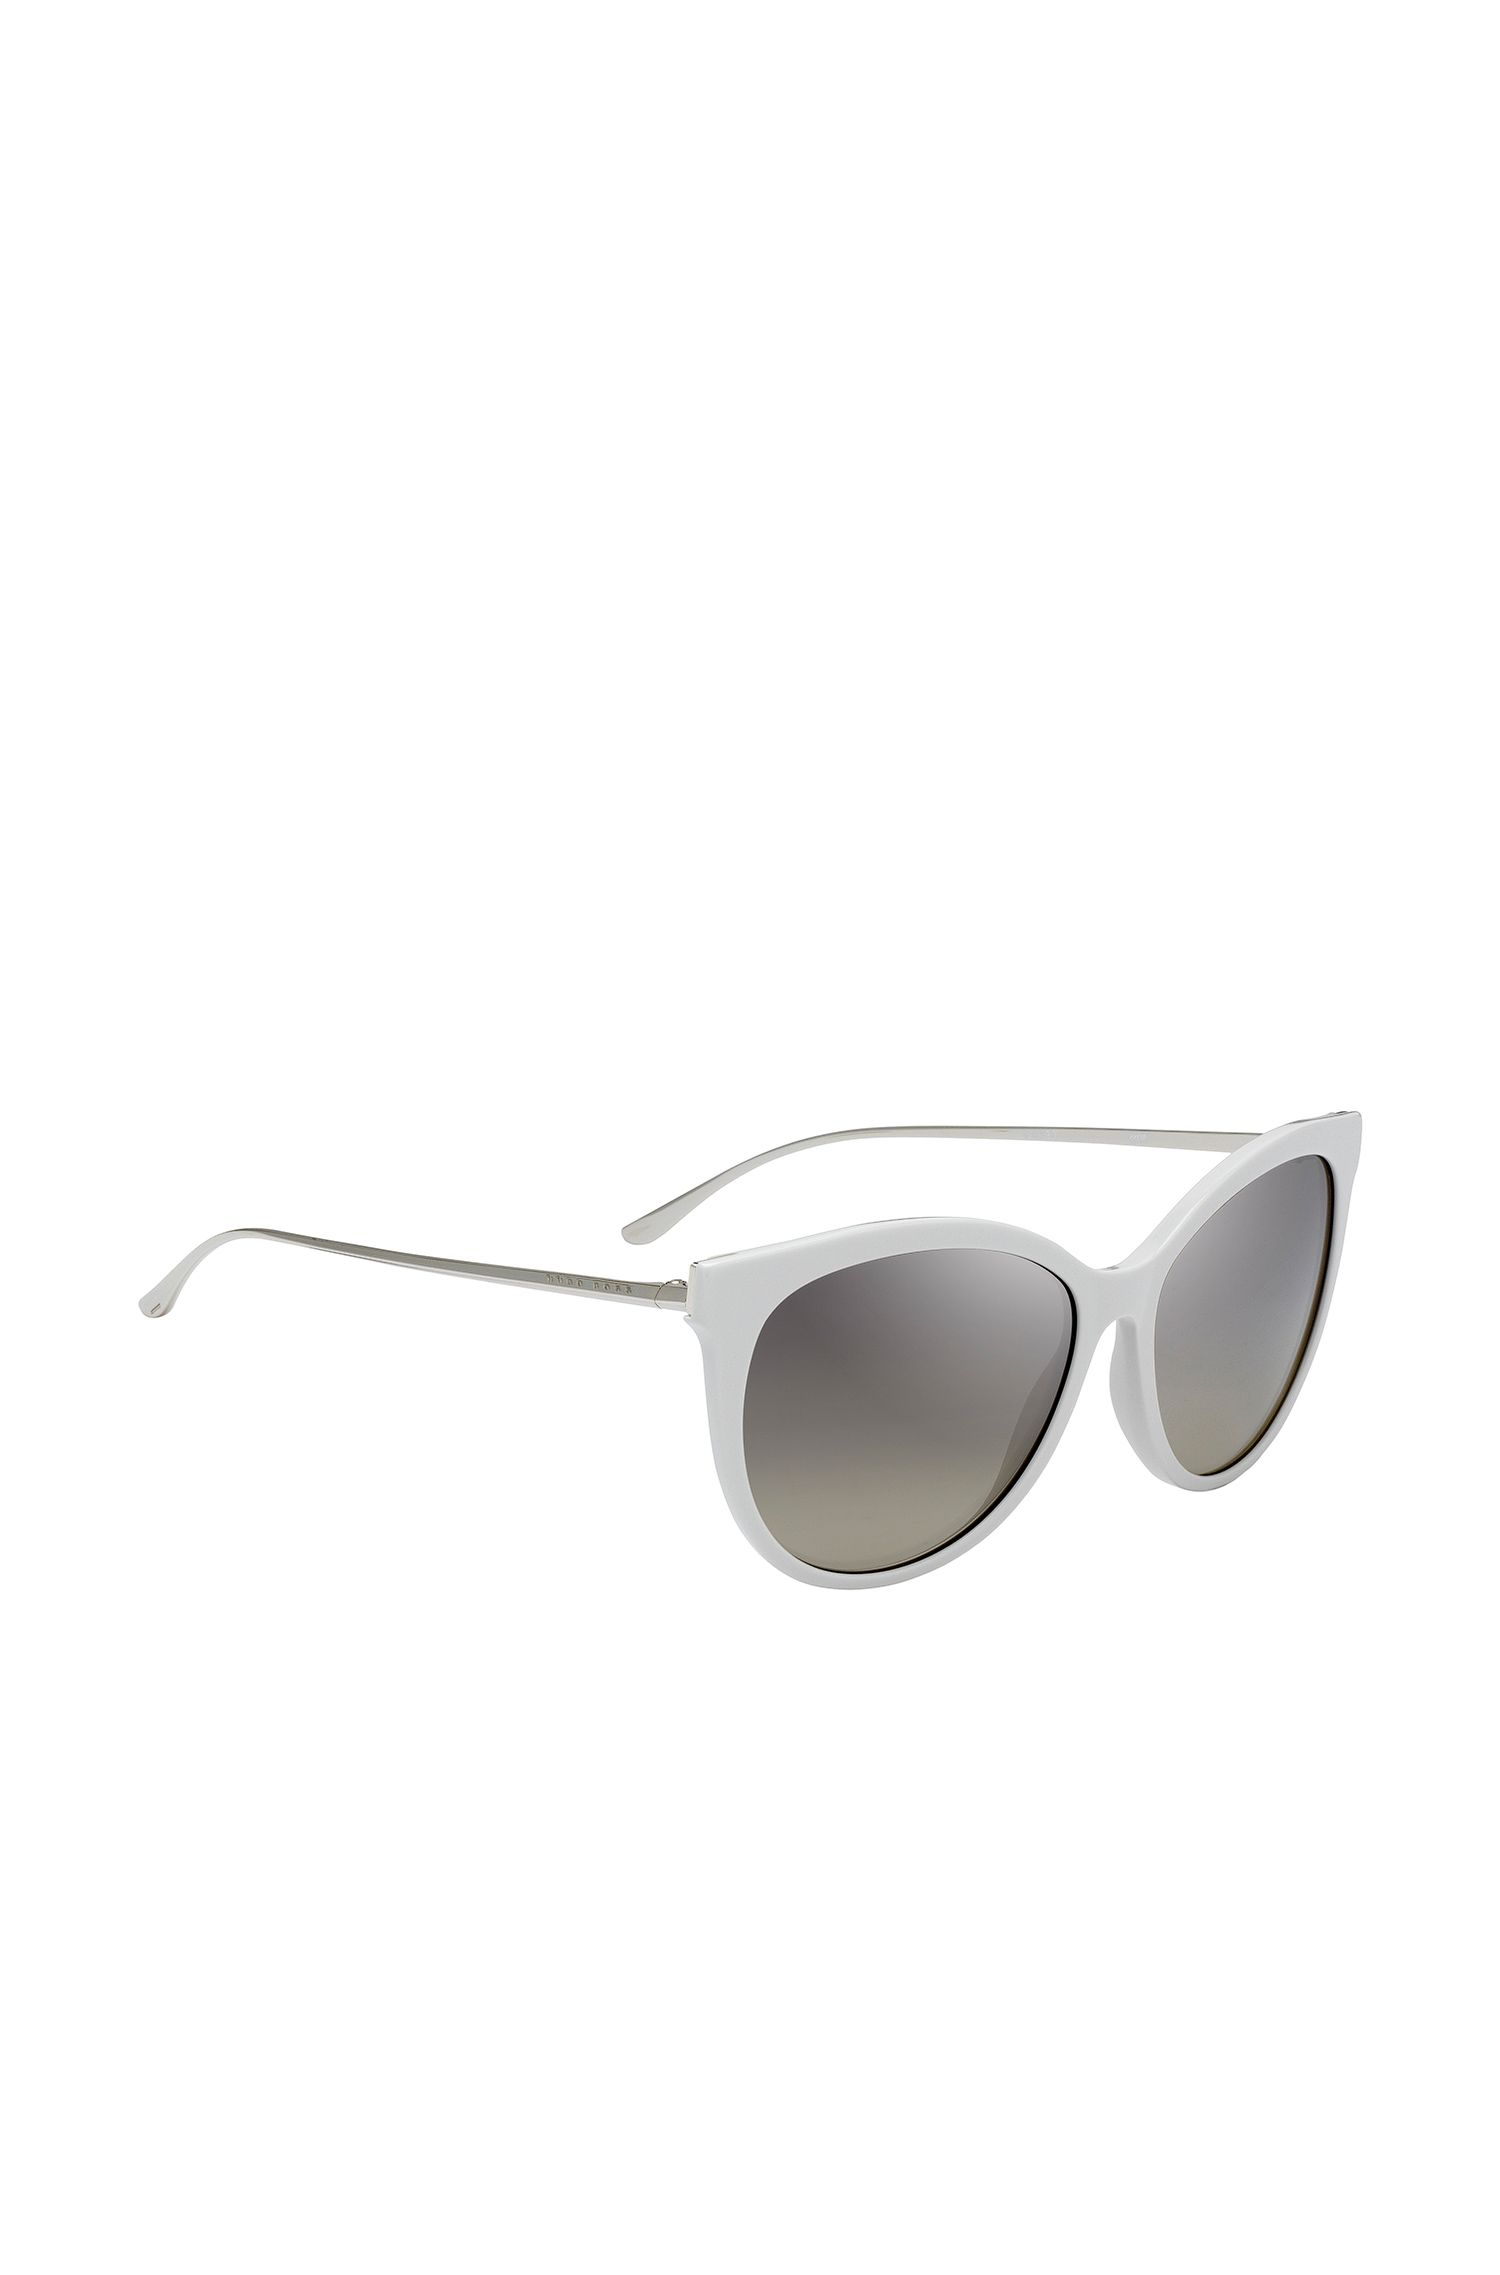 White Cat-Eye Sunglasses | BOSS 0892S